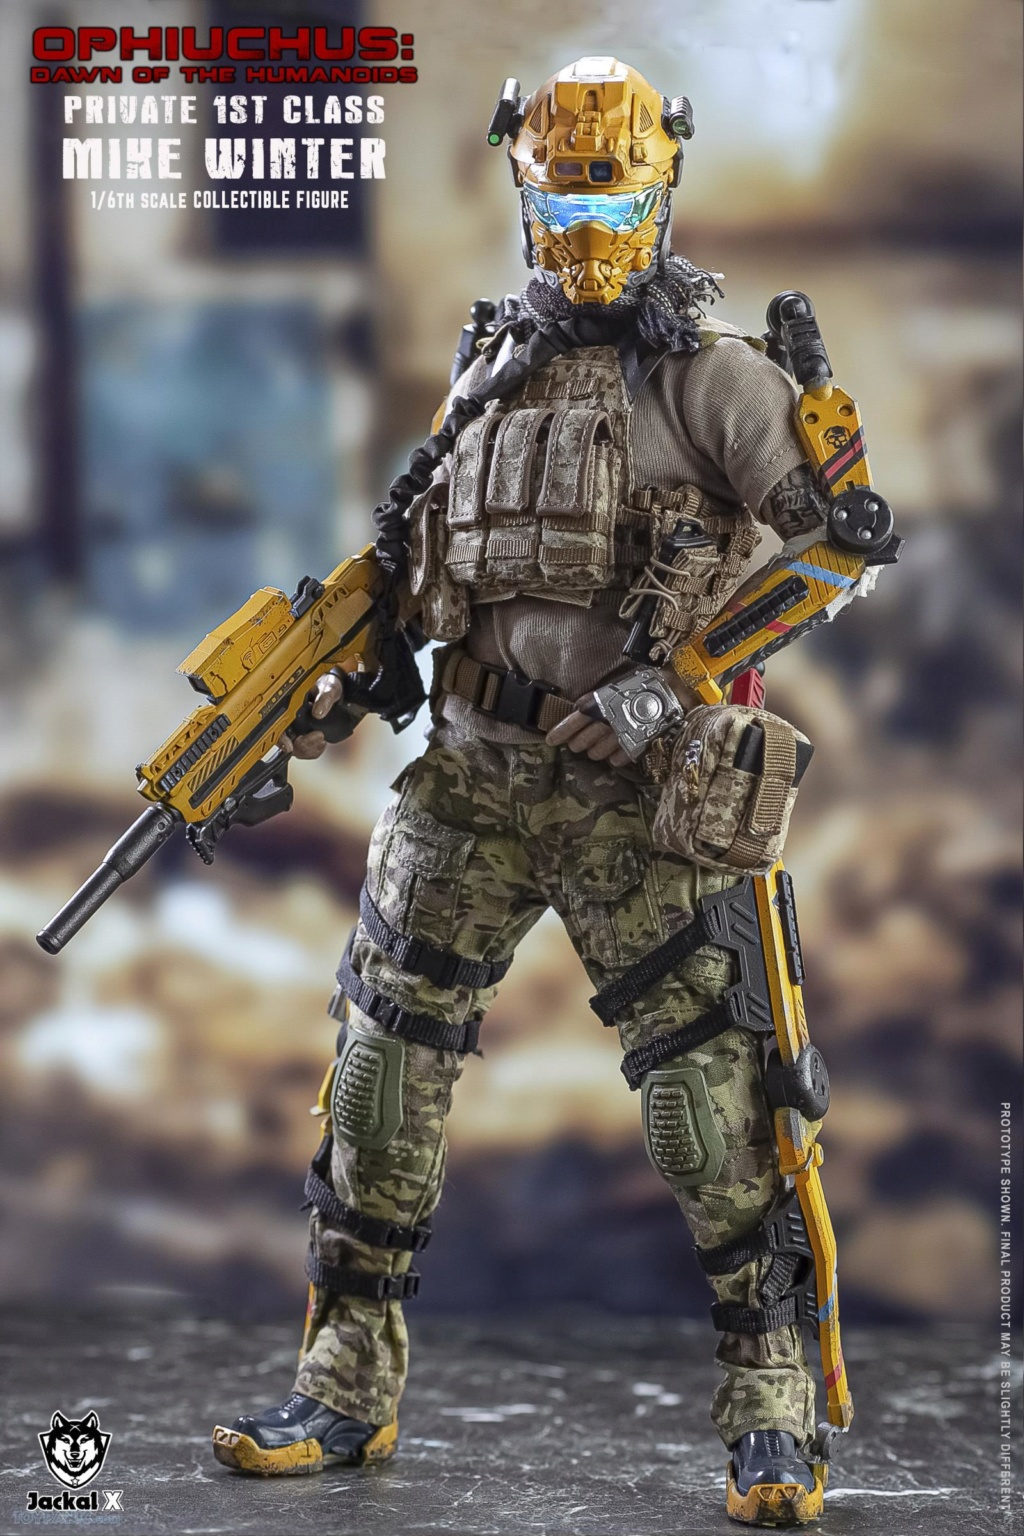 male - NEW PRODUCT: JackalX: 1/6 Ophiuchus: Dawn of Humanoid: Private 1st Class Mike Winter Collectible Figure (2 Versions) 43202016